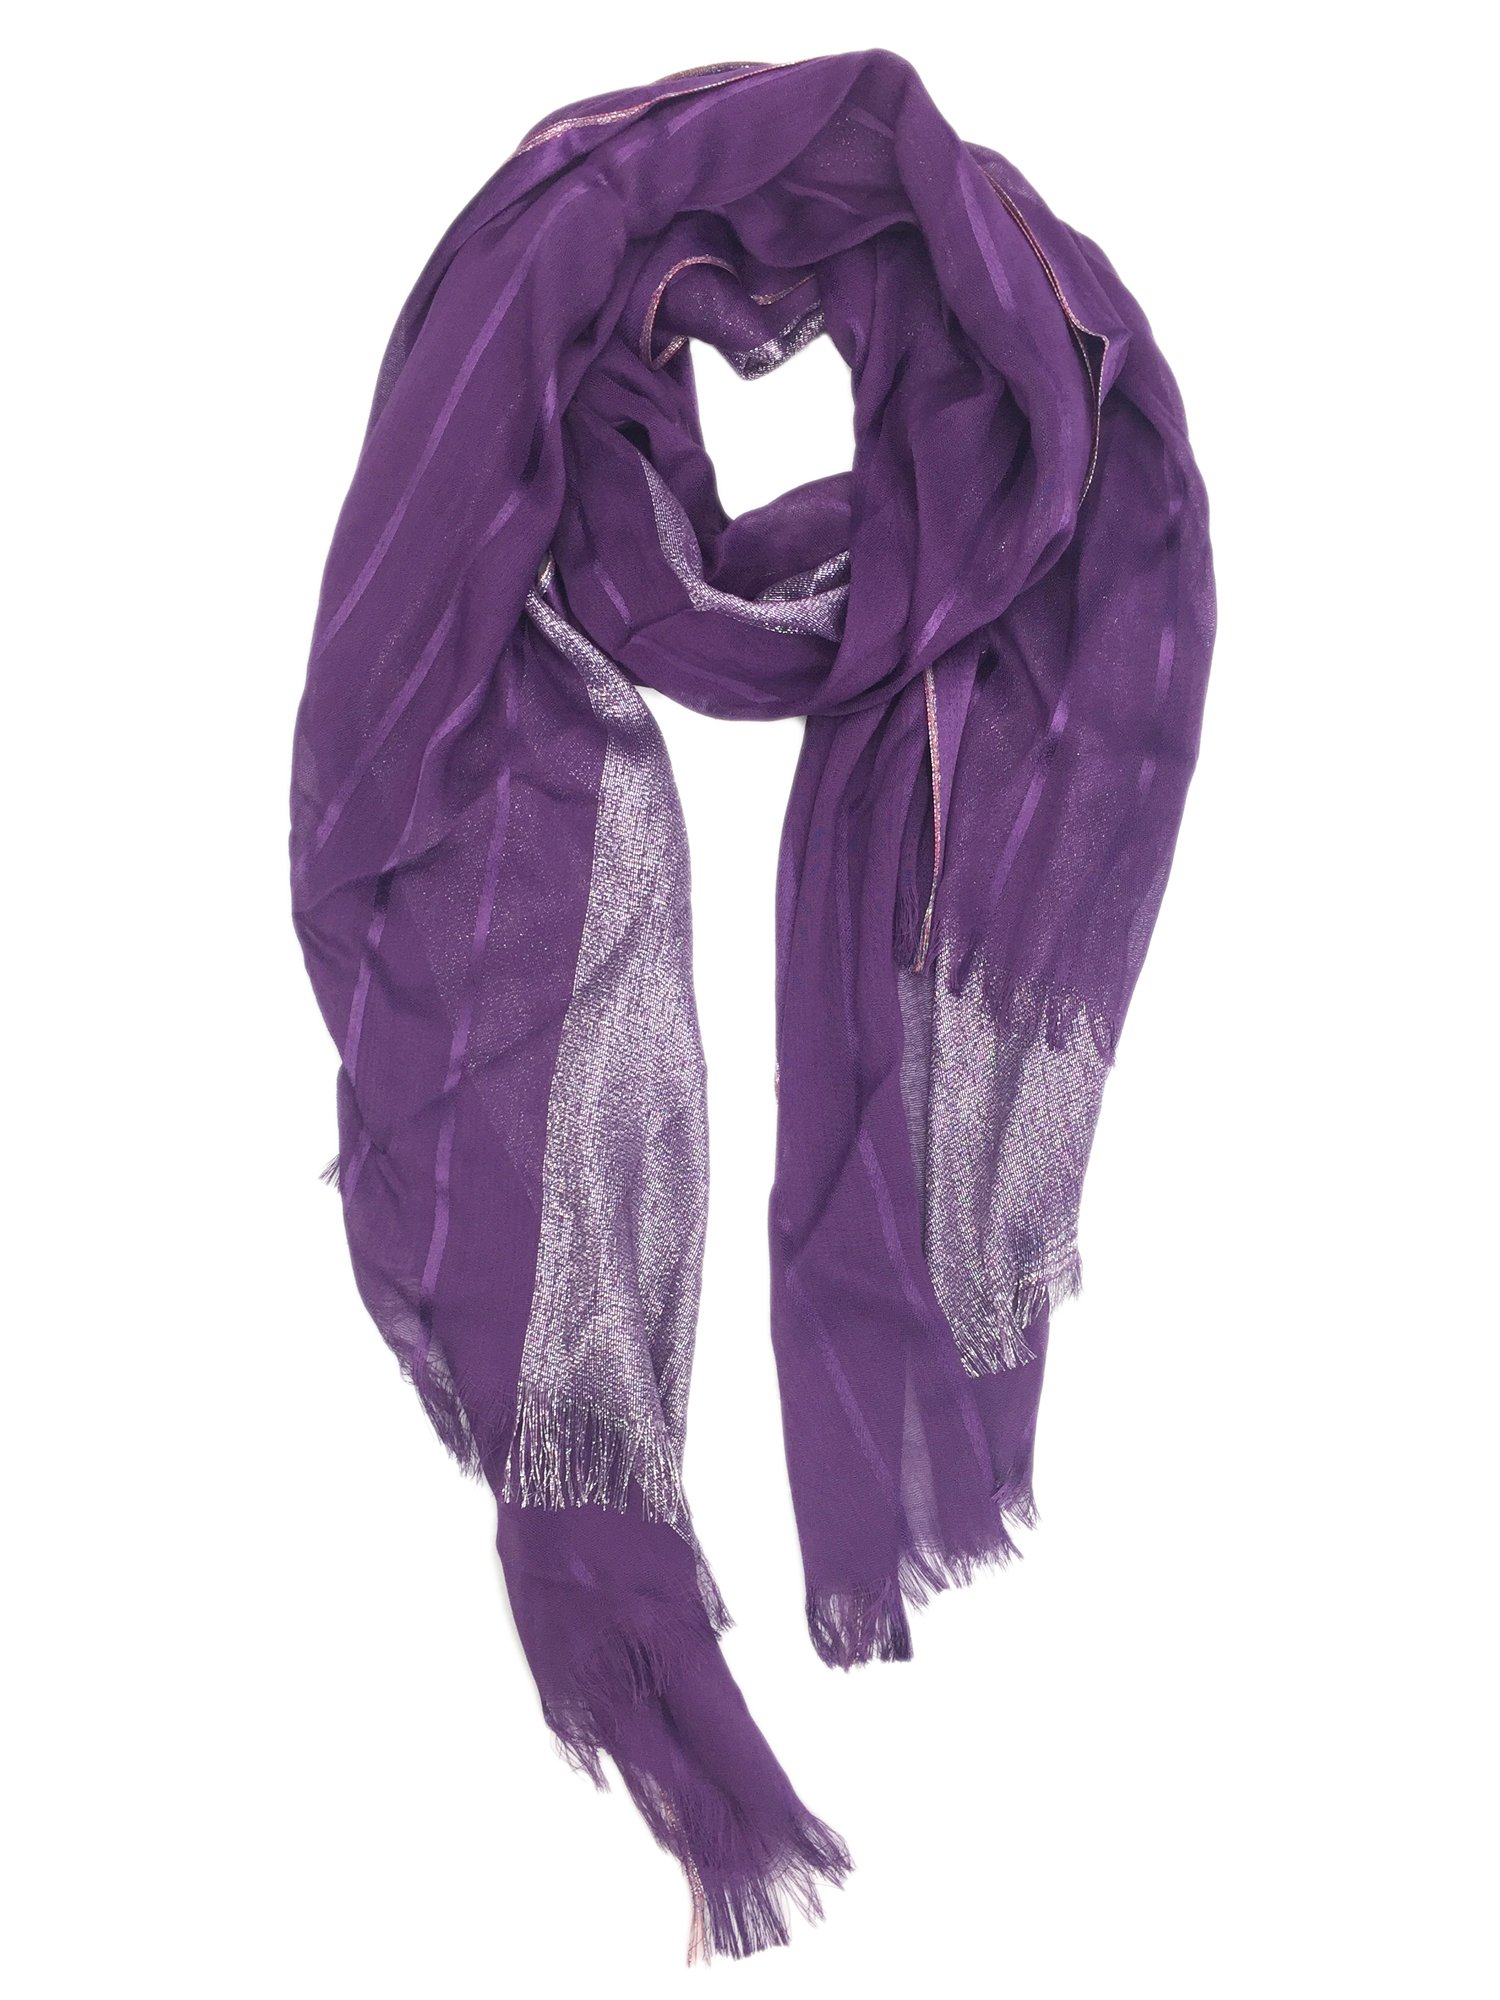 YOUR SMILE Women's Lightweight Glitter Color mixture Print Shawl Scarf For Spring Season (Purple) by YOUR SMILE (Image #1)